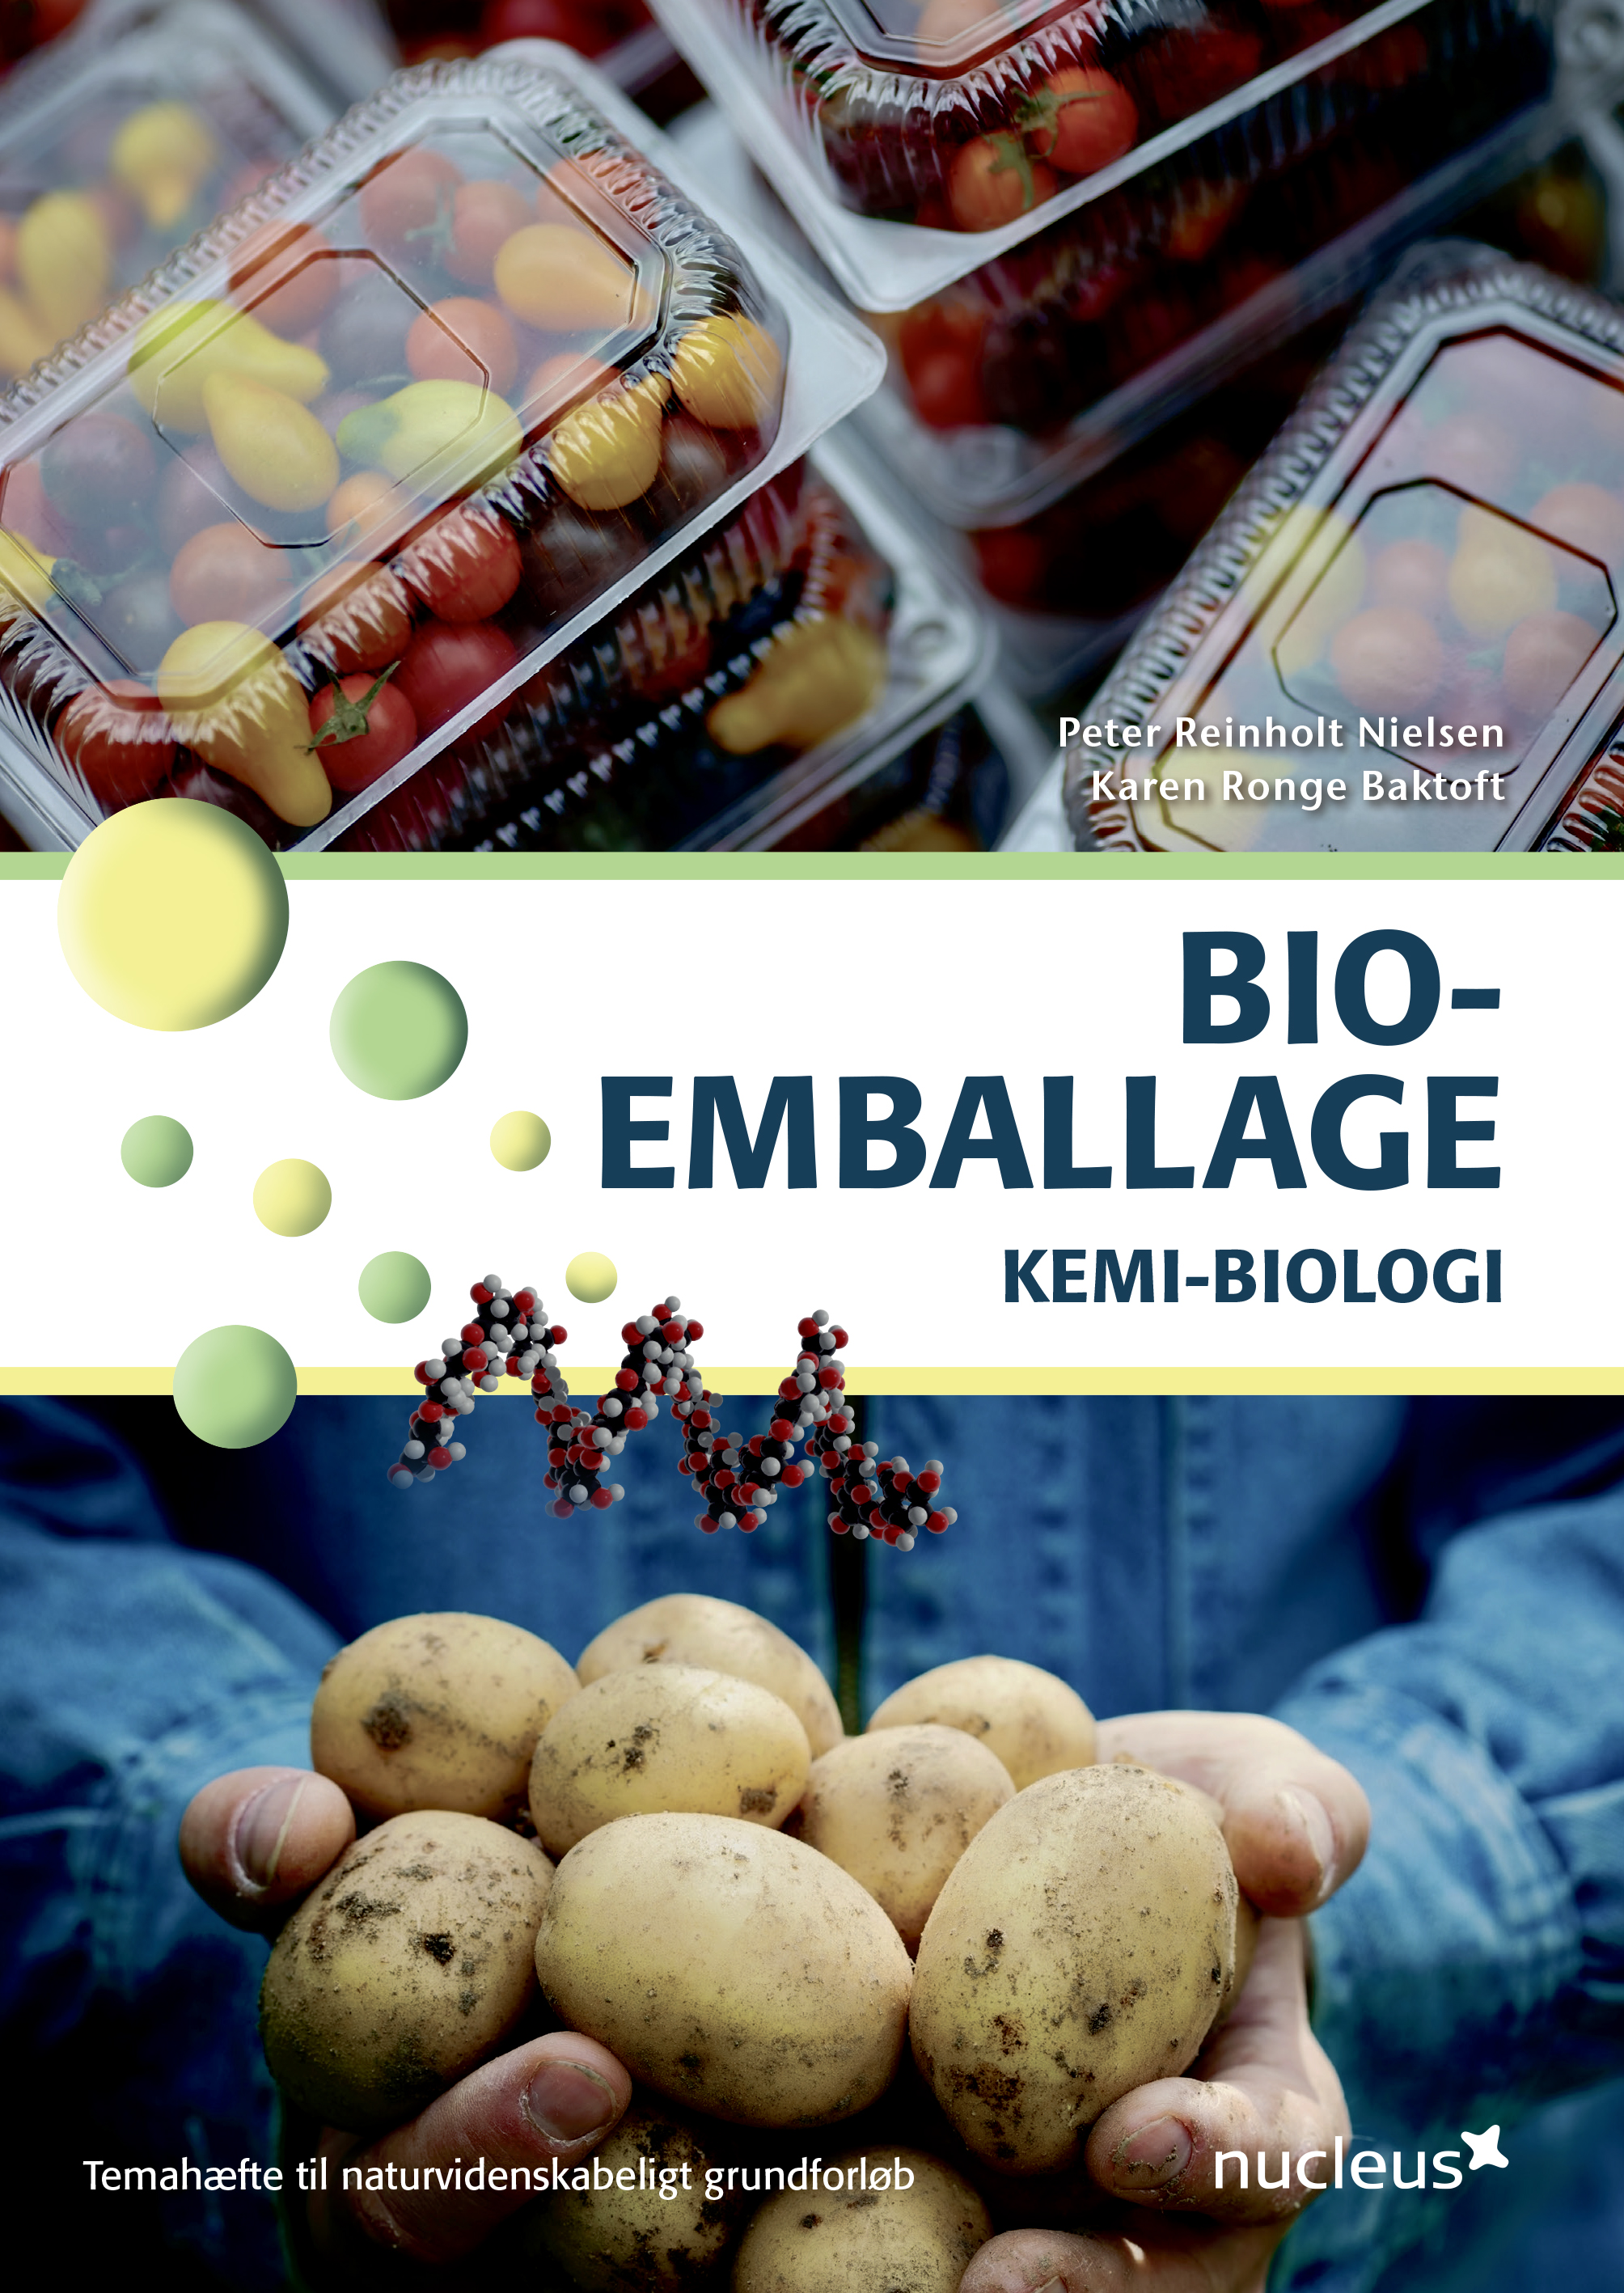 Bioemballage